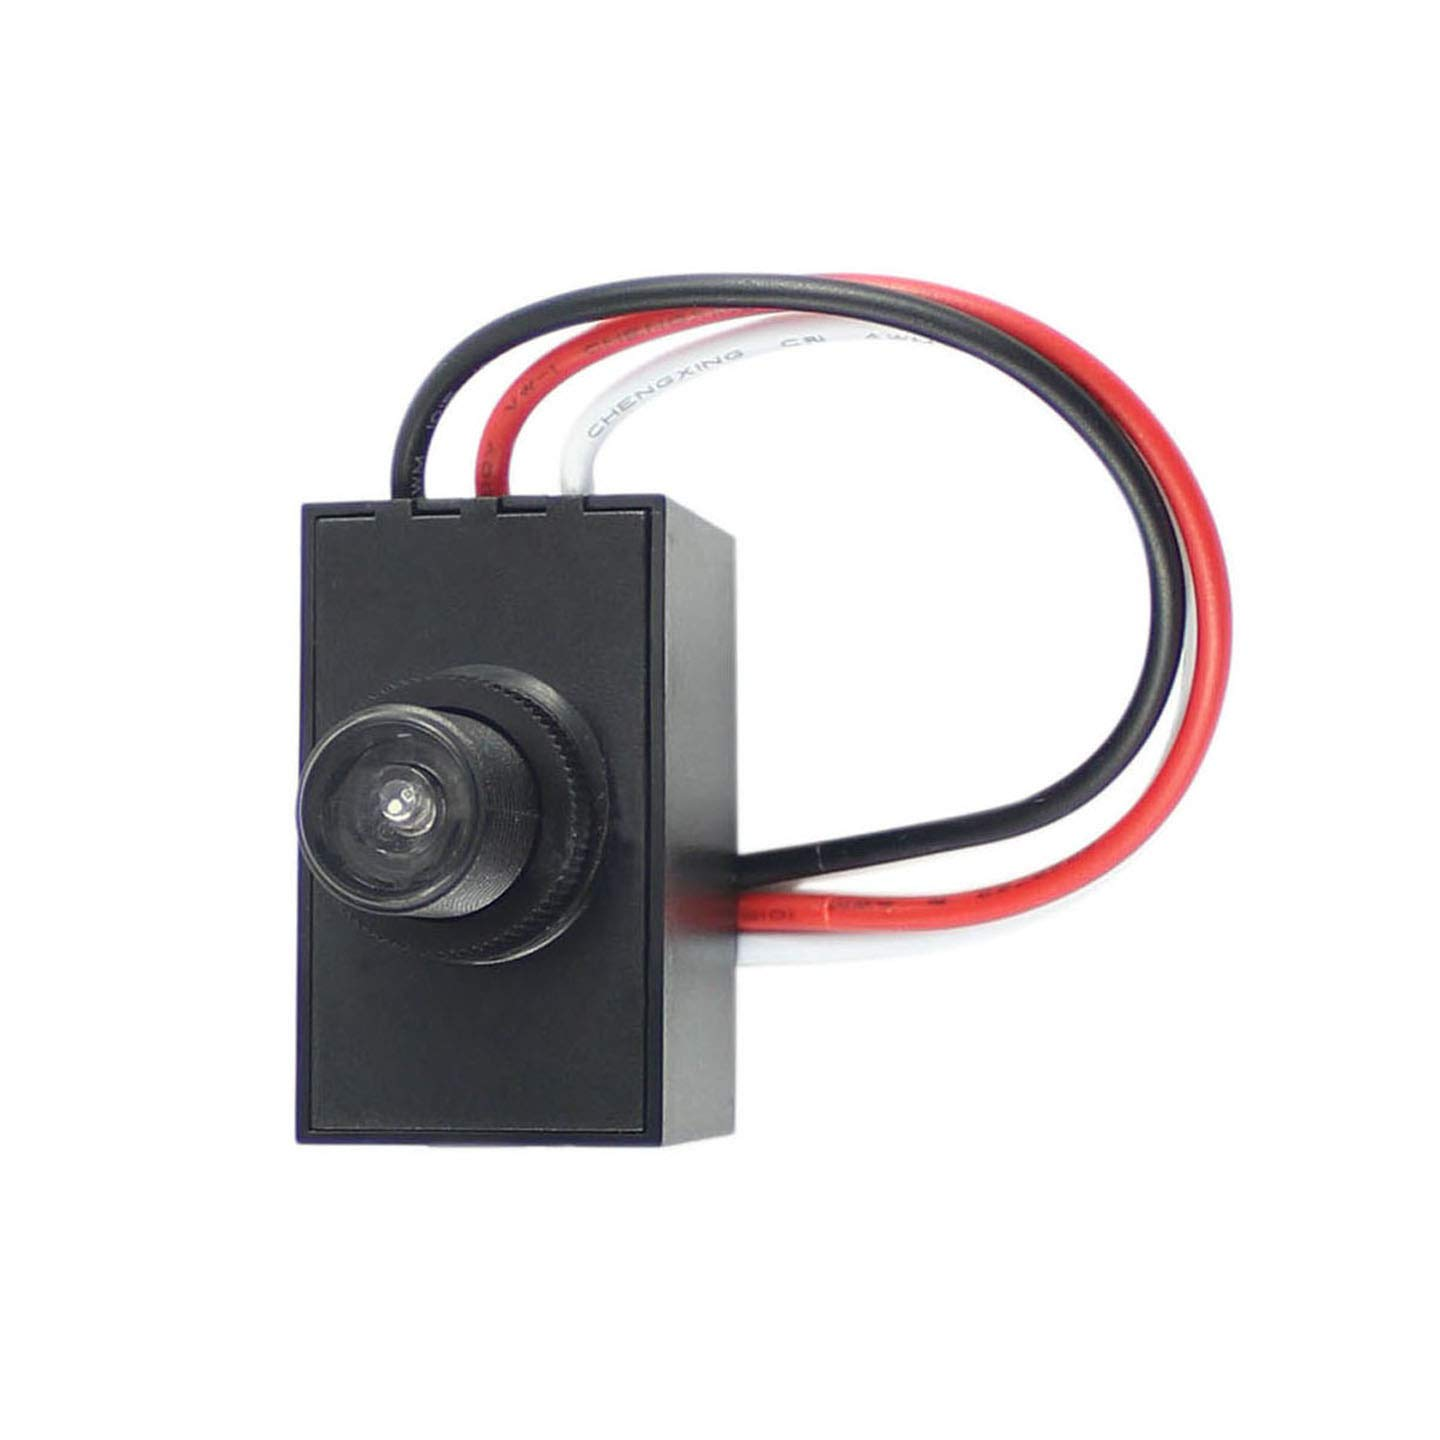 J.LUMI YCA1030 Outdoor Hard-Wired Post Eye Light Control with Photocell Light Sensor UL Listed